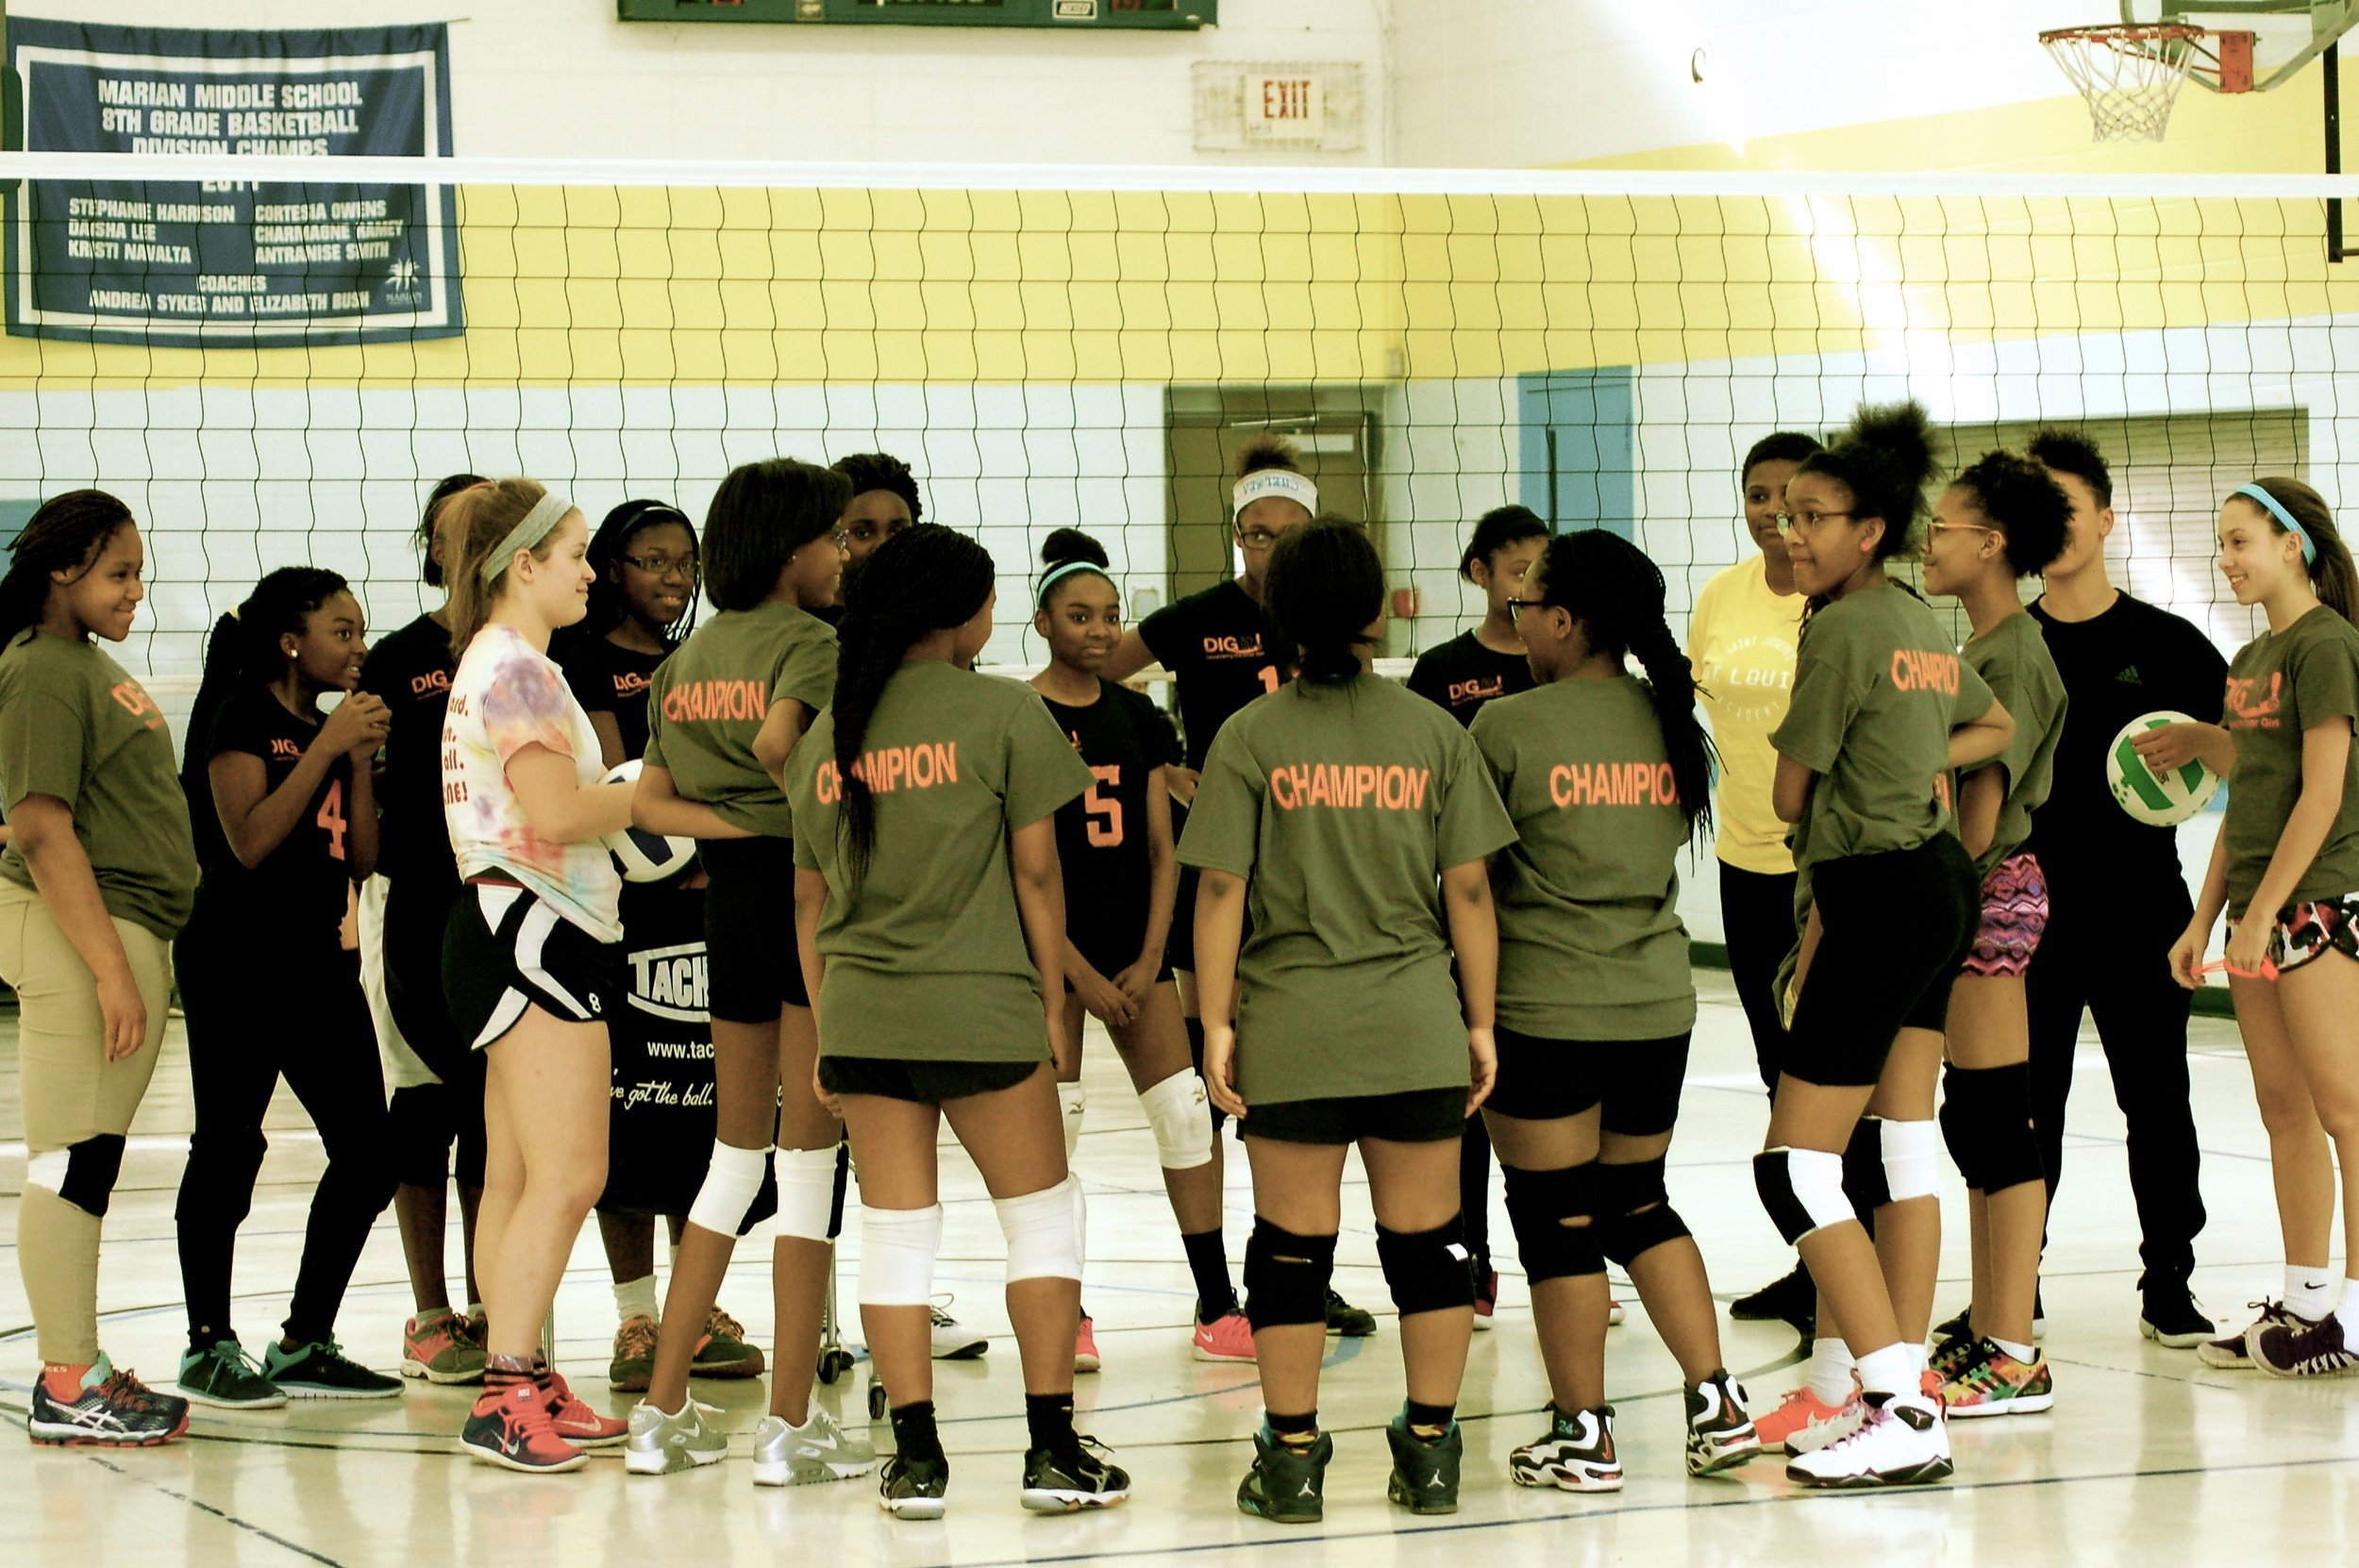 DIG it! Volleyball - DIG It! Volleyball Inc. is a 501(c)3 female empowerment organization.Our slogan